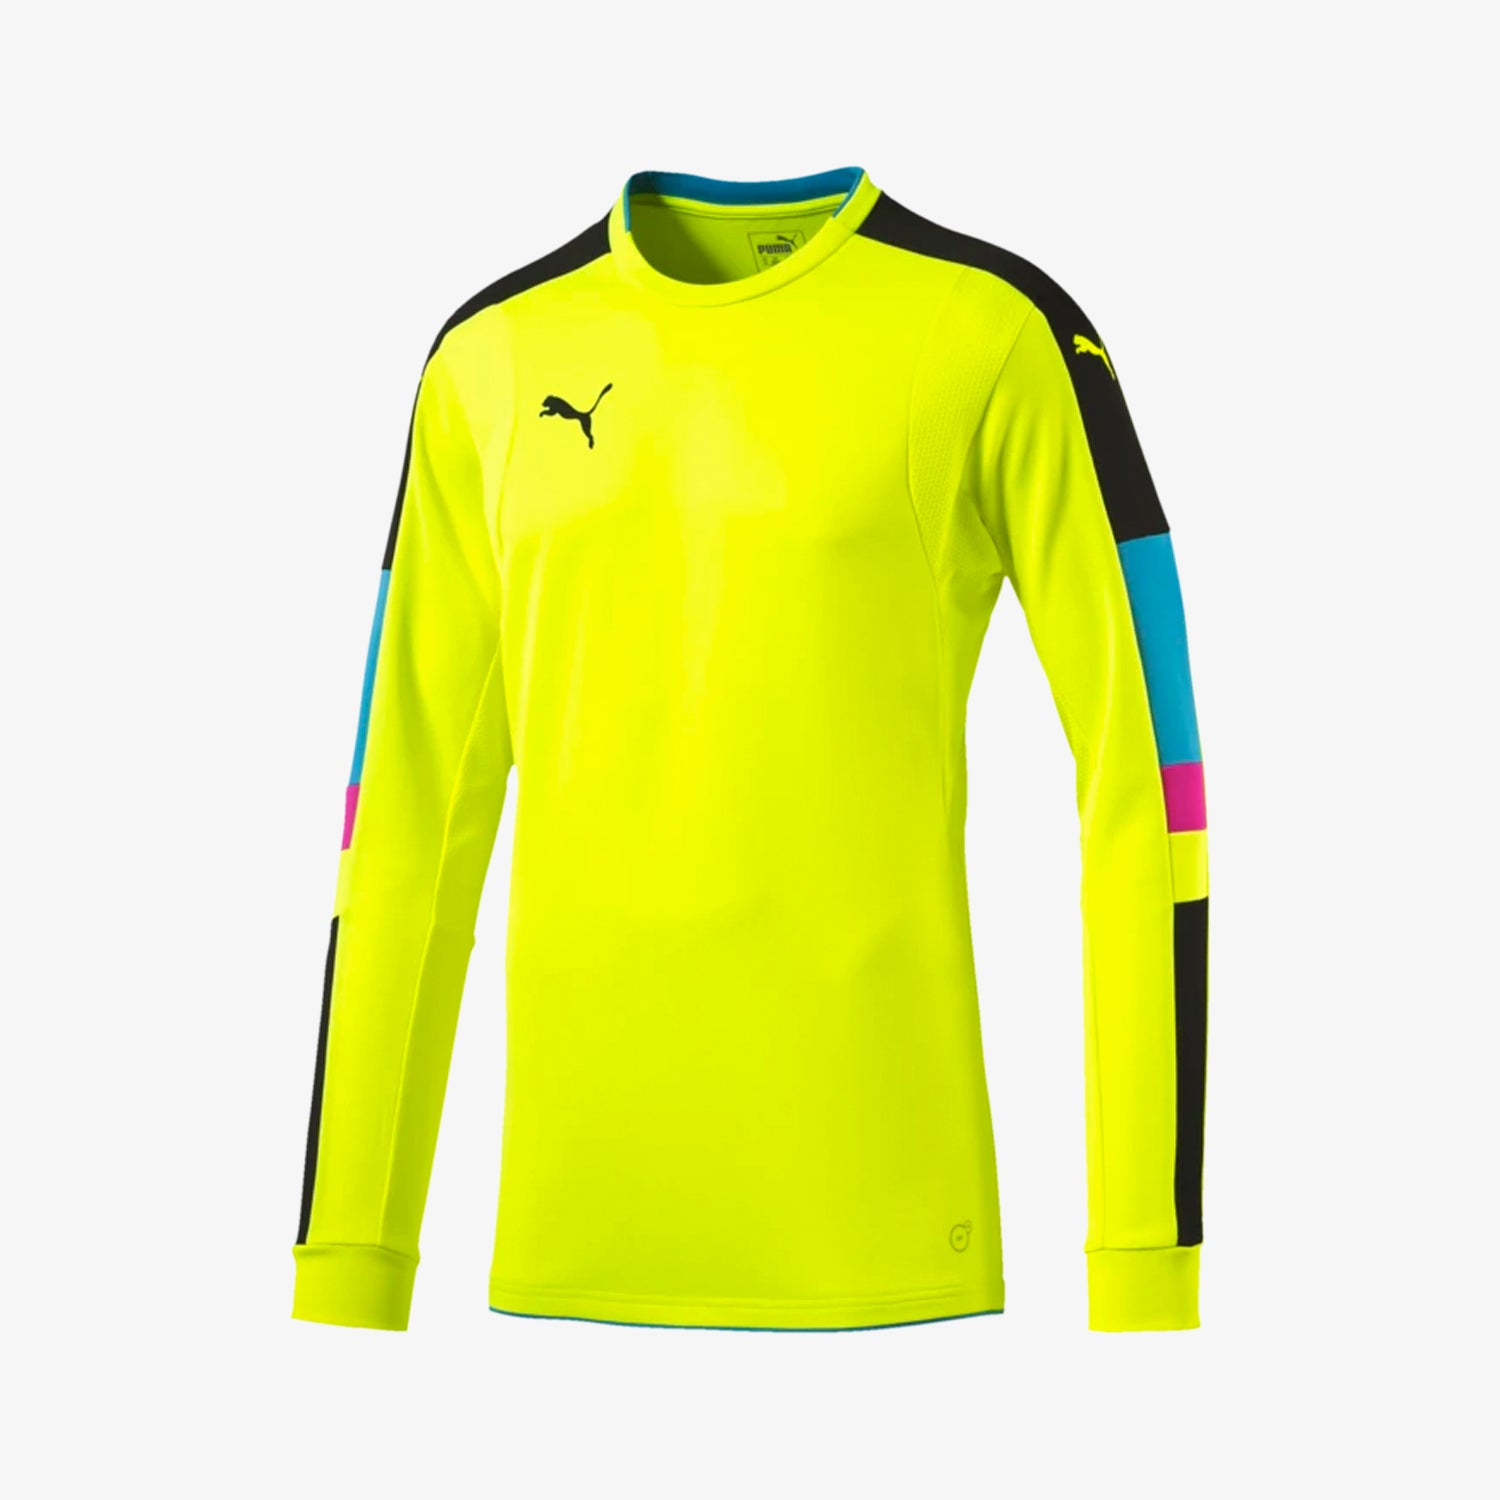 Tournament Goalkeeper Jersey - Yellow/Blue